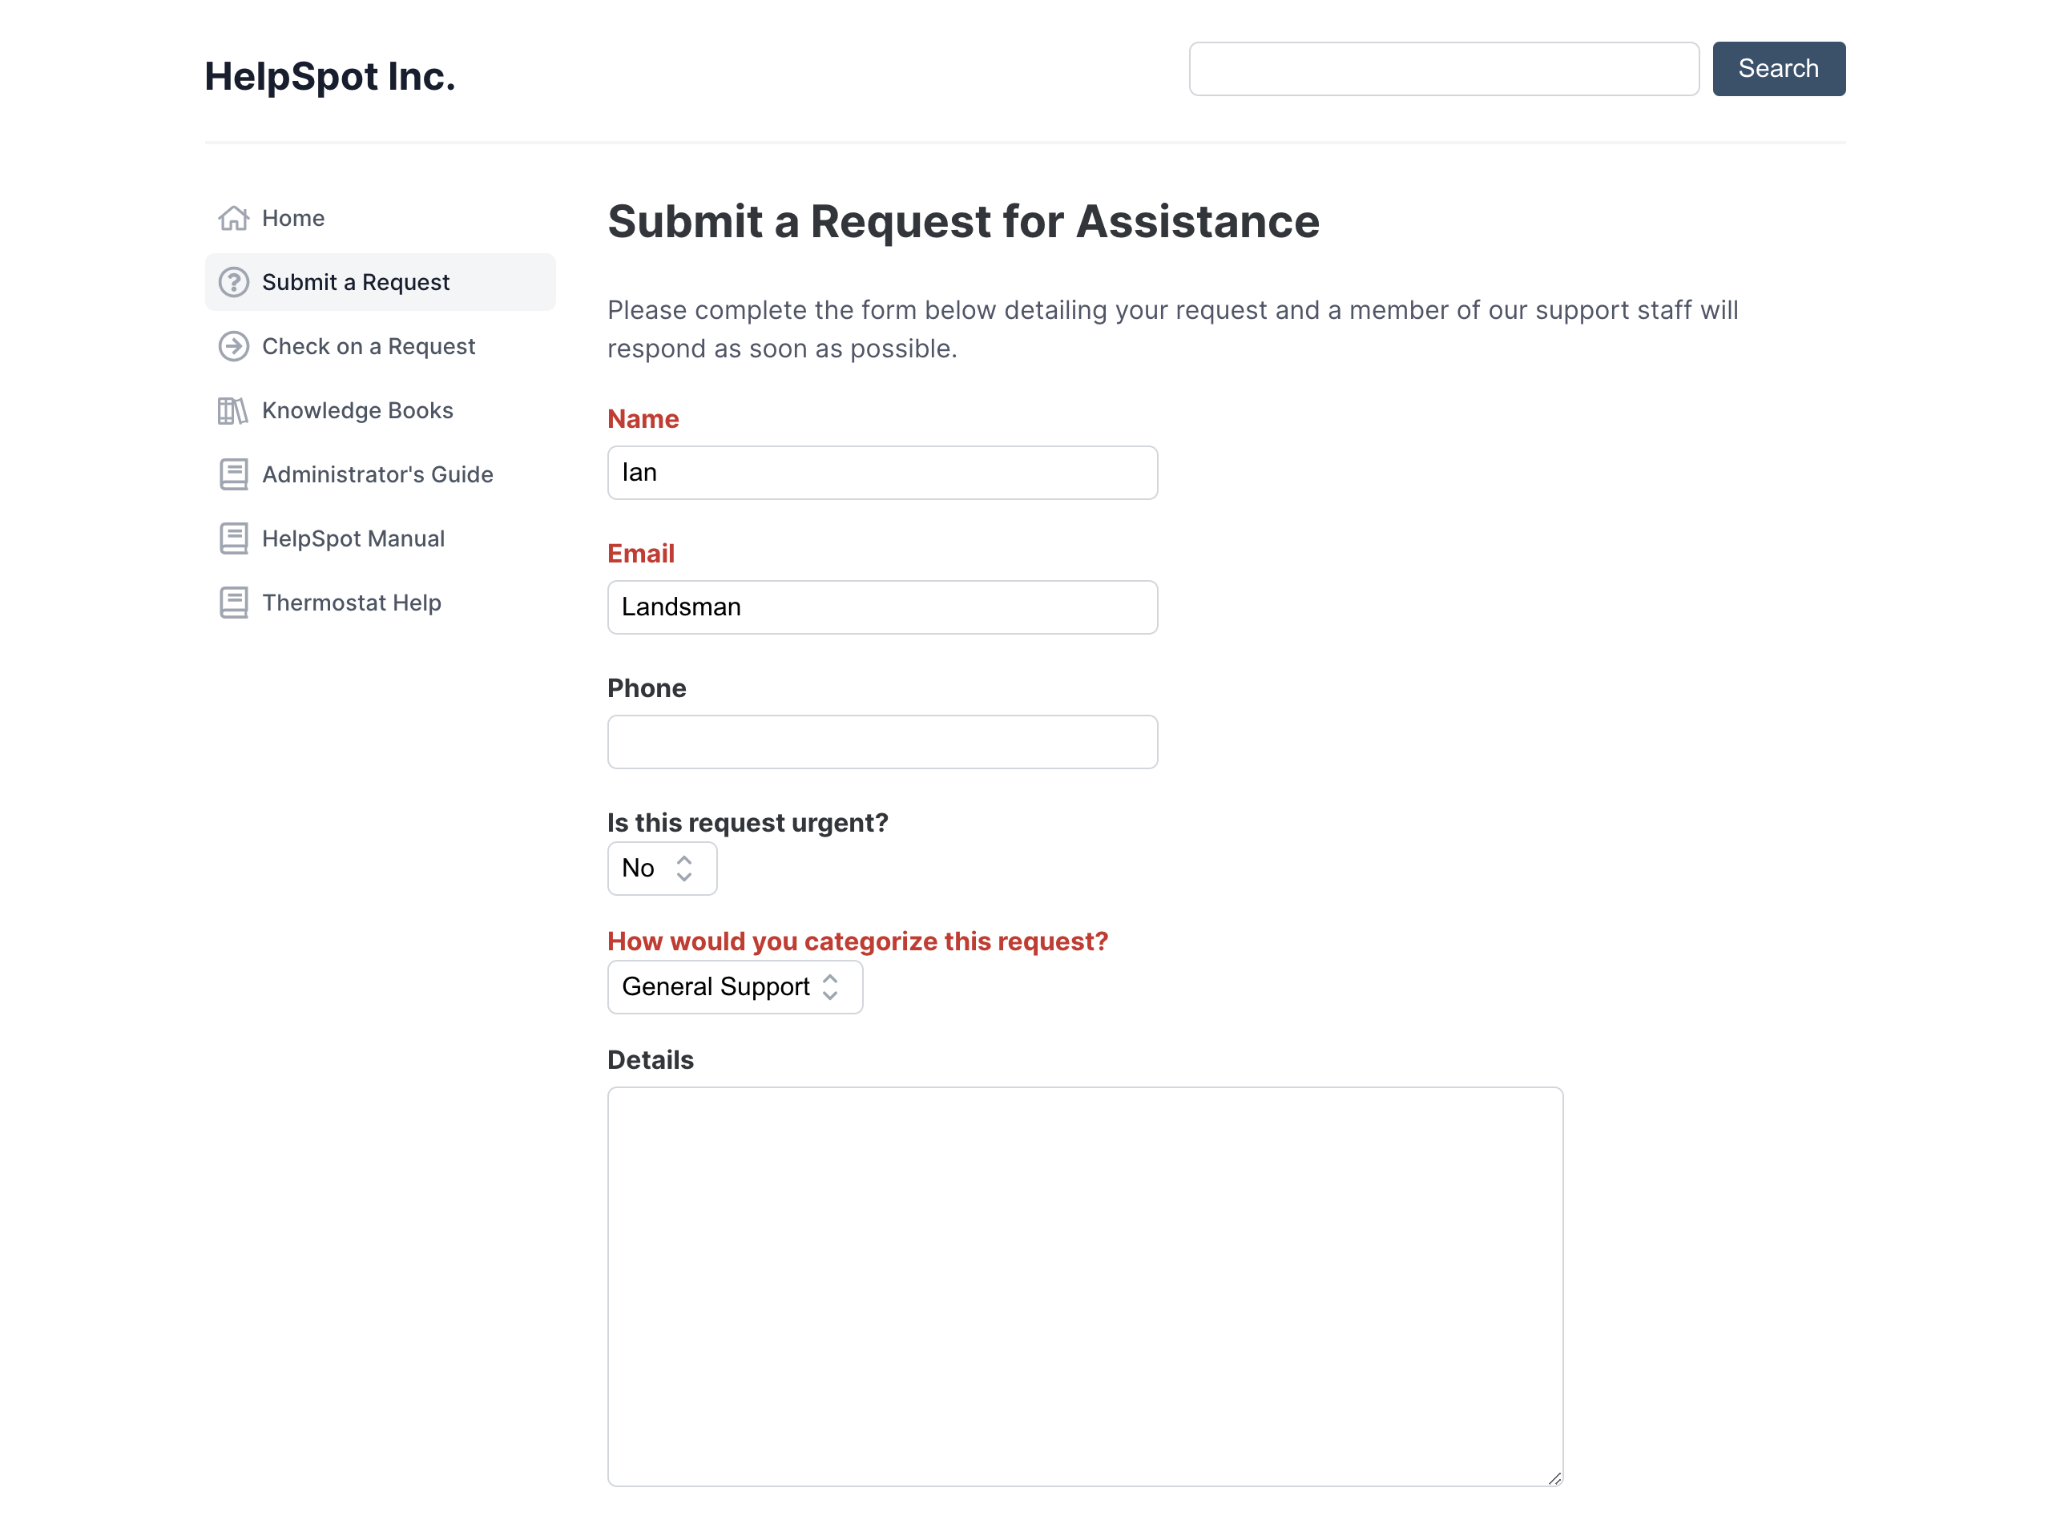 HelpSpot's portal to Submit a Request for Assistance